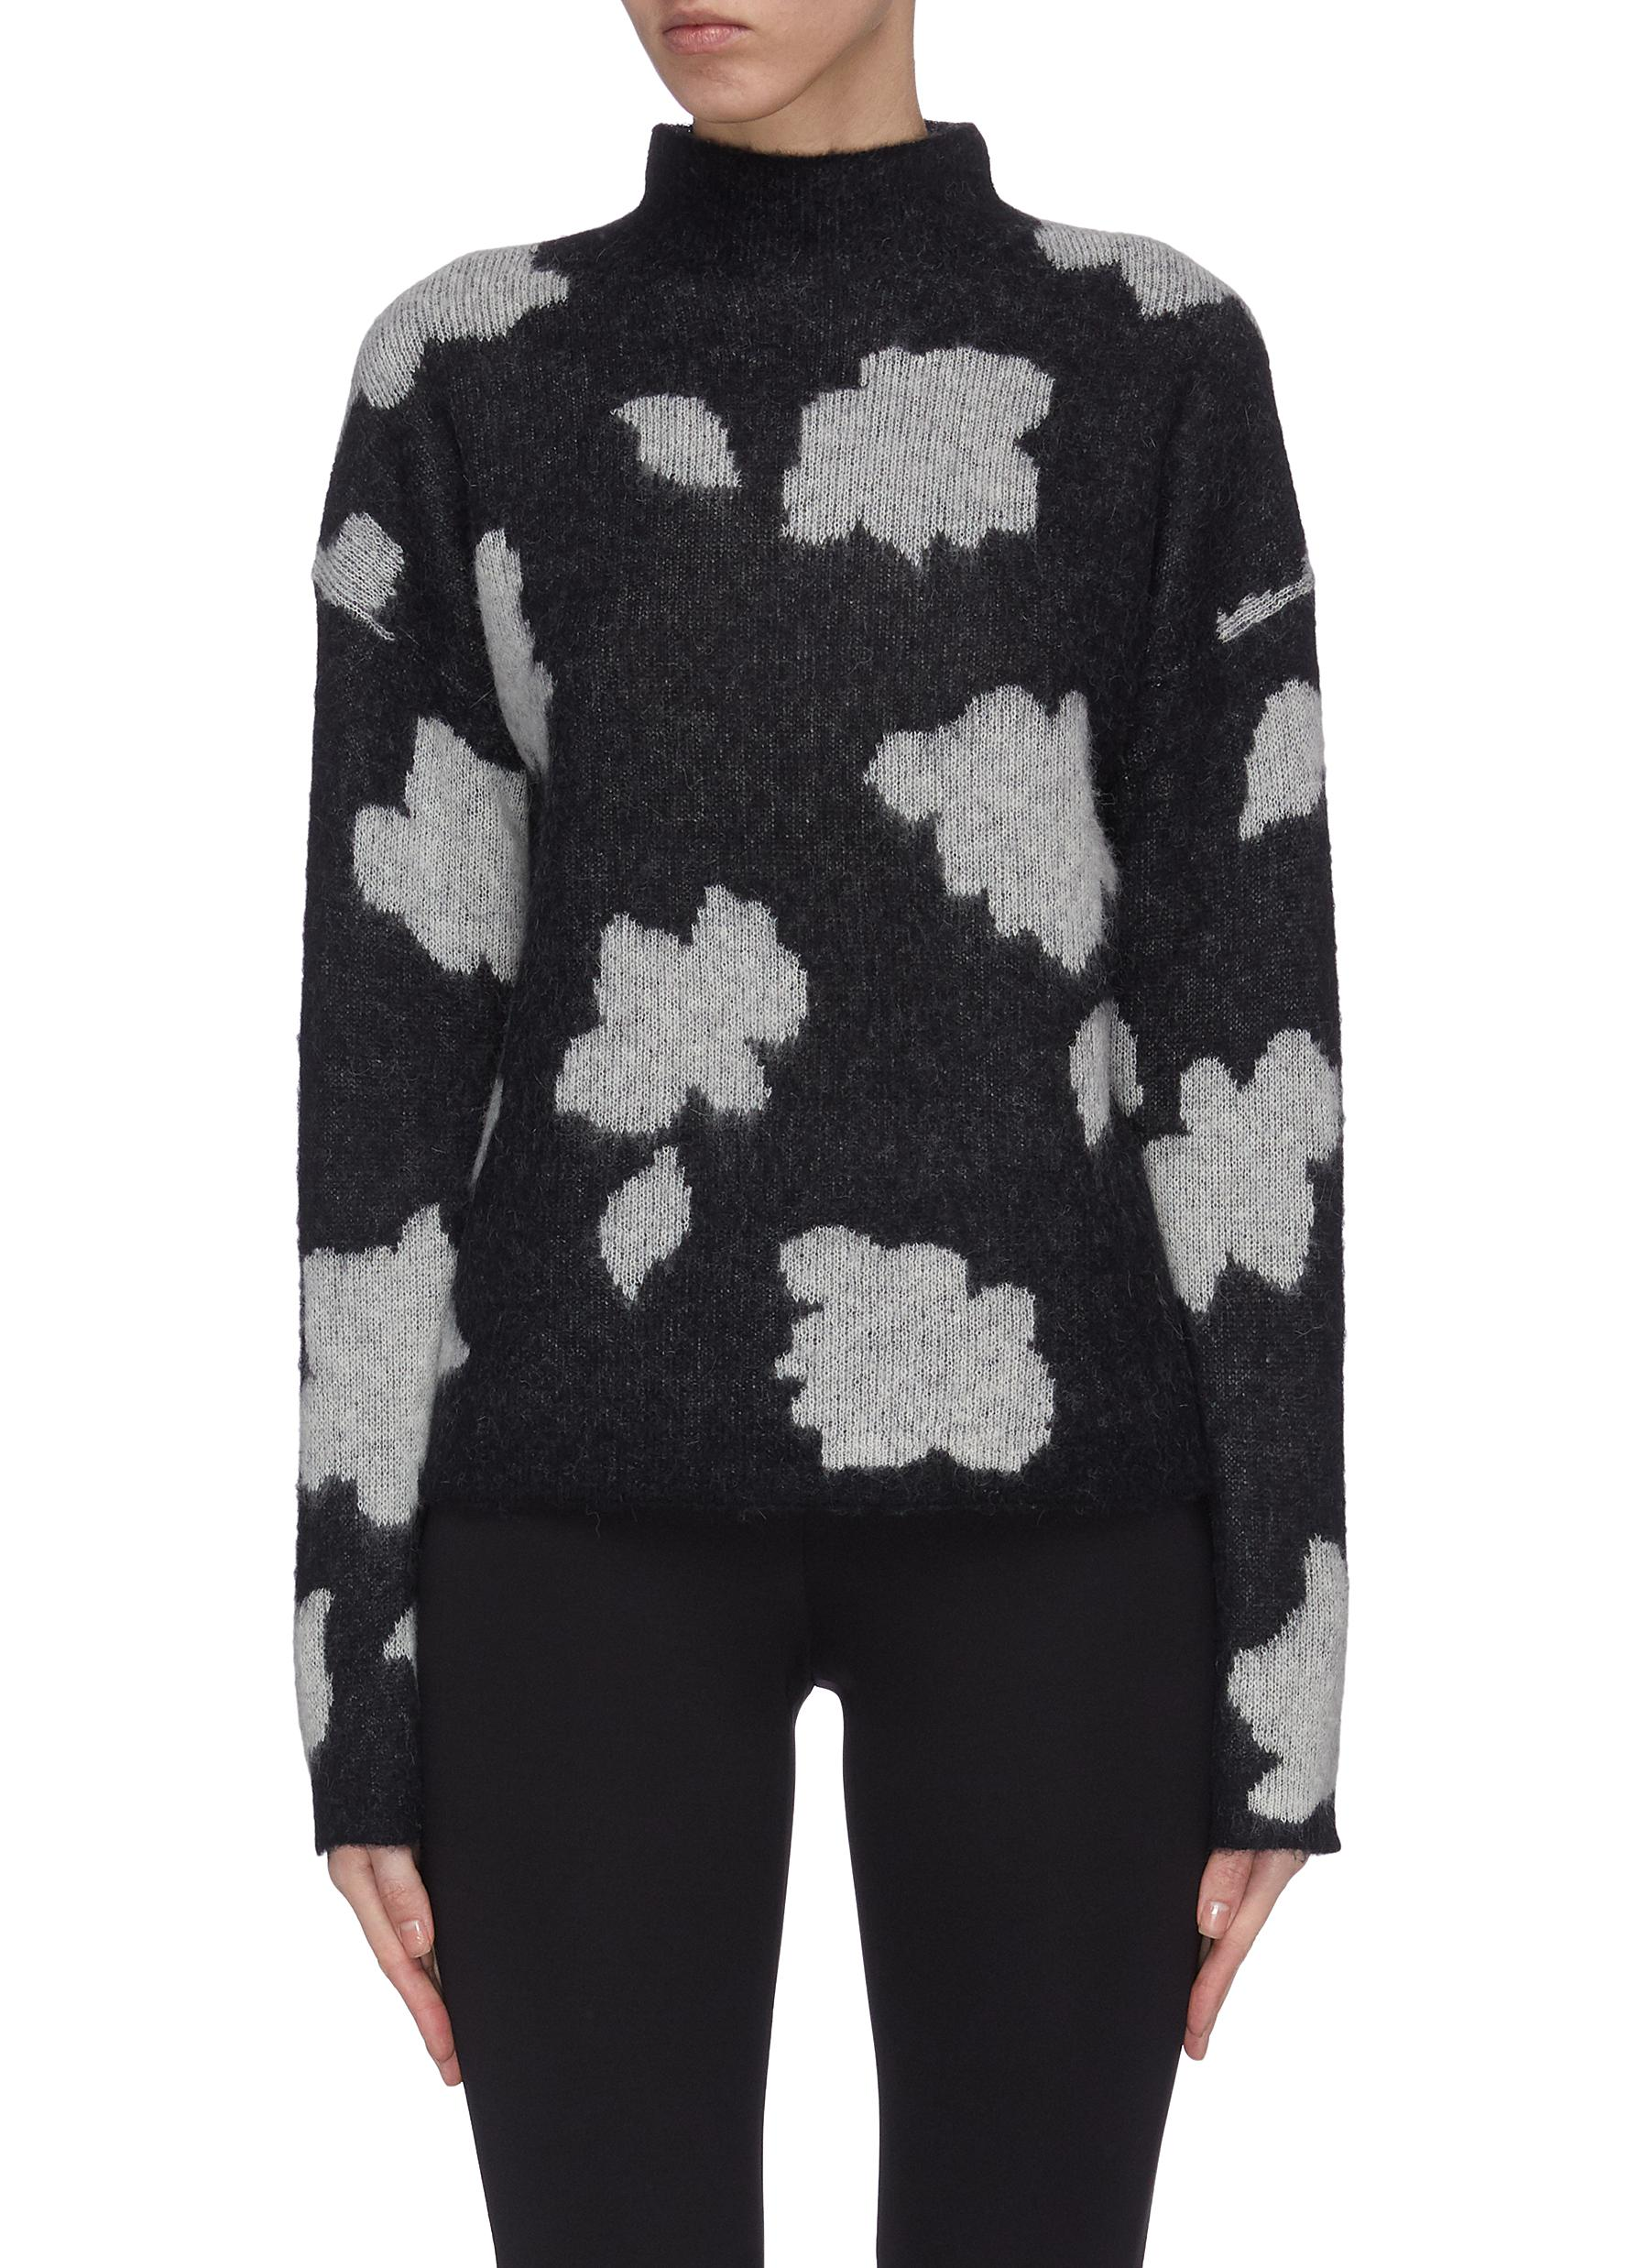 Buy Theory Knitwear 'Floral Po' intarsia mock neck sweater